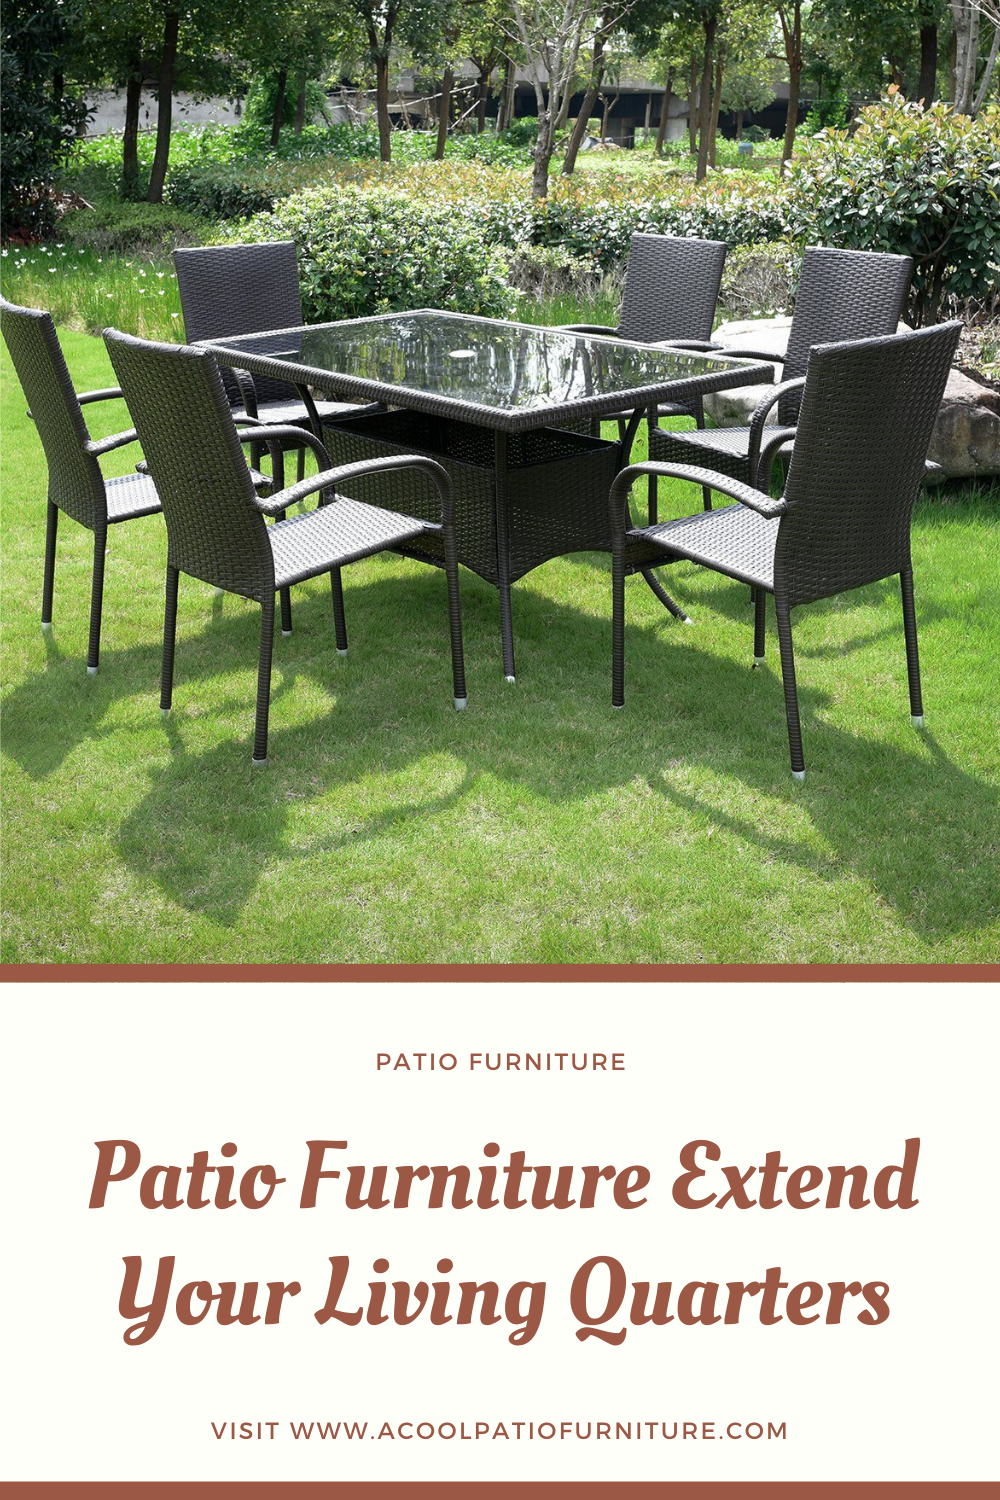 Patio Furniture Extend Your Living Quarters In 2020 Patio Furniture Patio Resin Patio Furniture